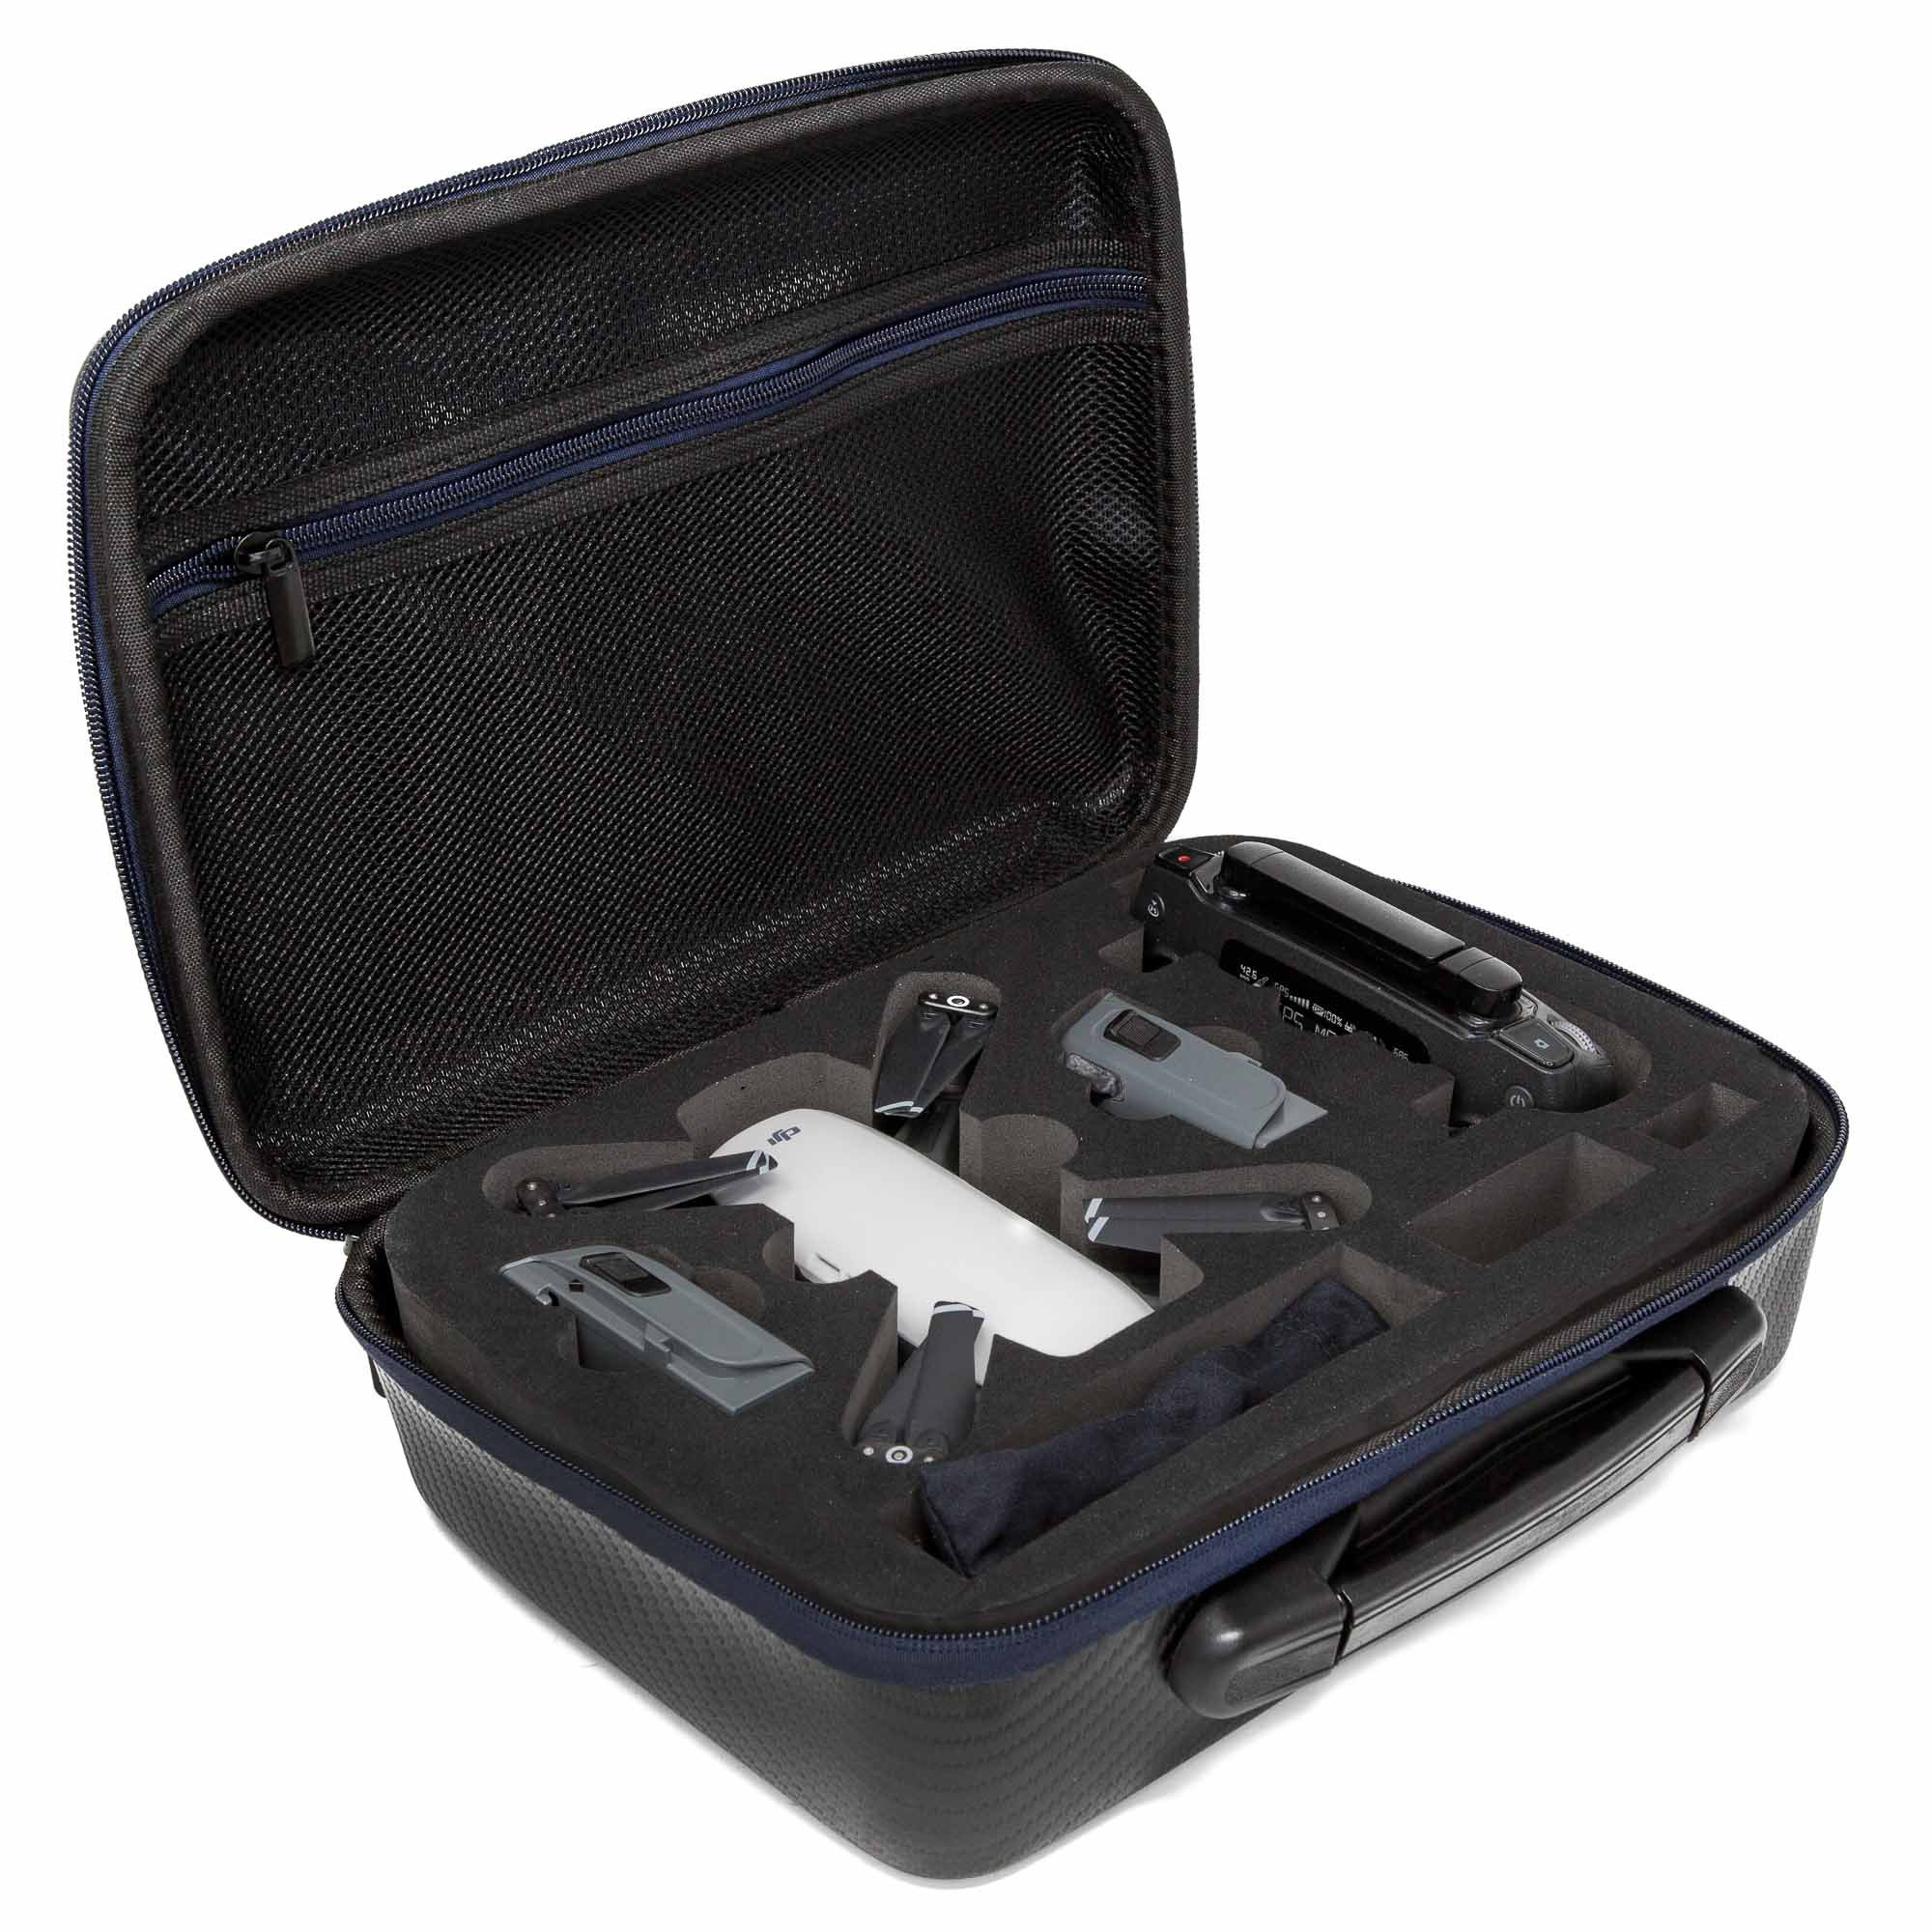 Ultimaxx Water-Resistant Rugged Hard Shell Compact Storage Case for DJI Spark Drone and Accessories by Ultimaxx